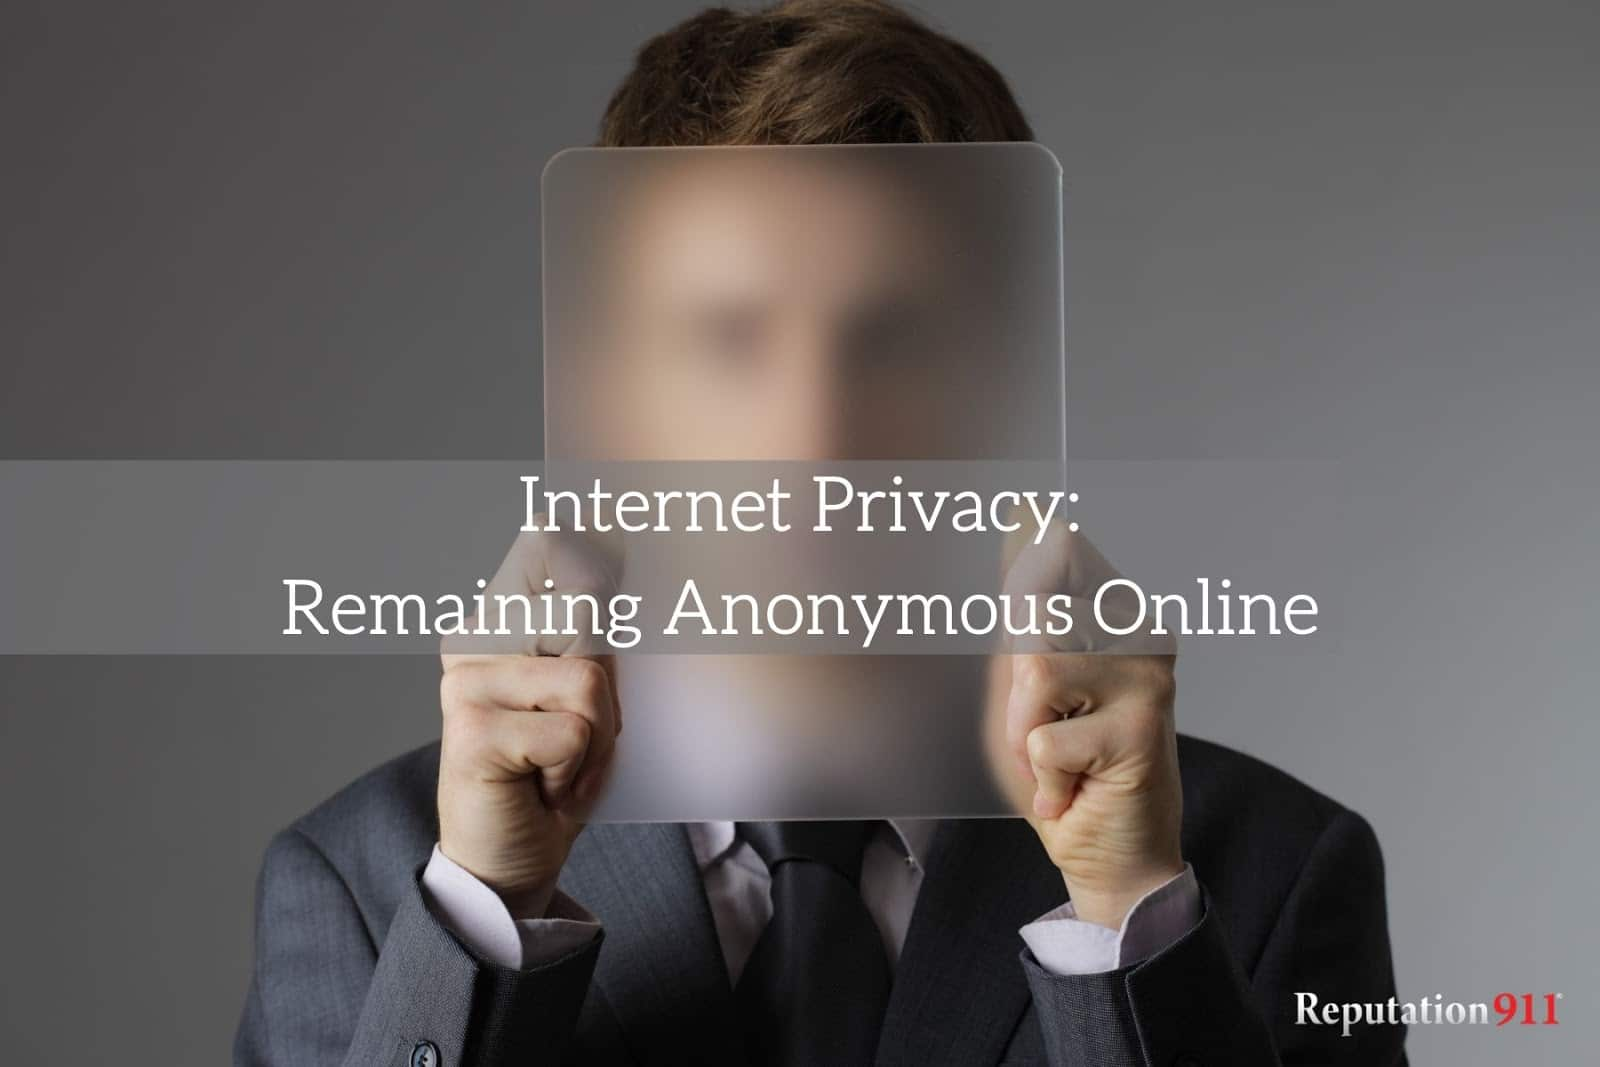 Can You Stay Anonymous Online to Protect Your Privacy